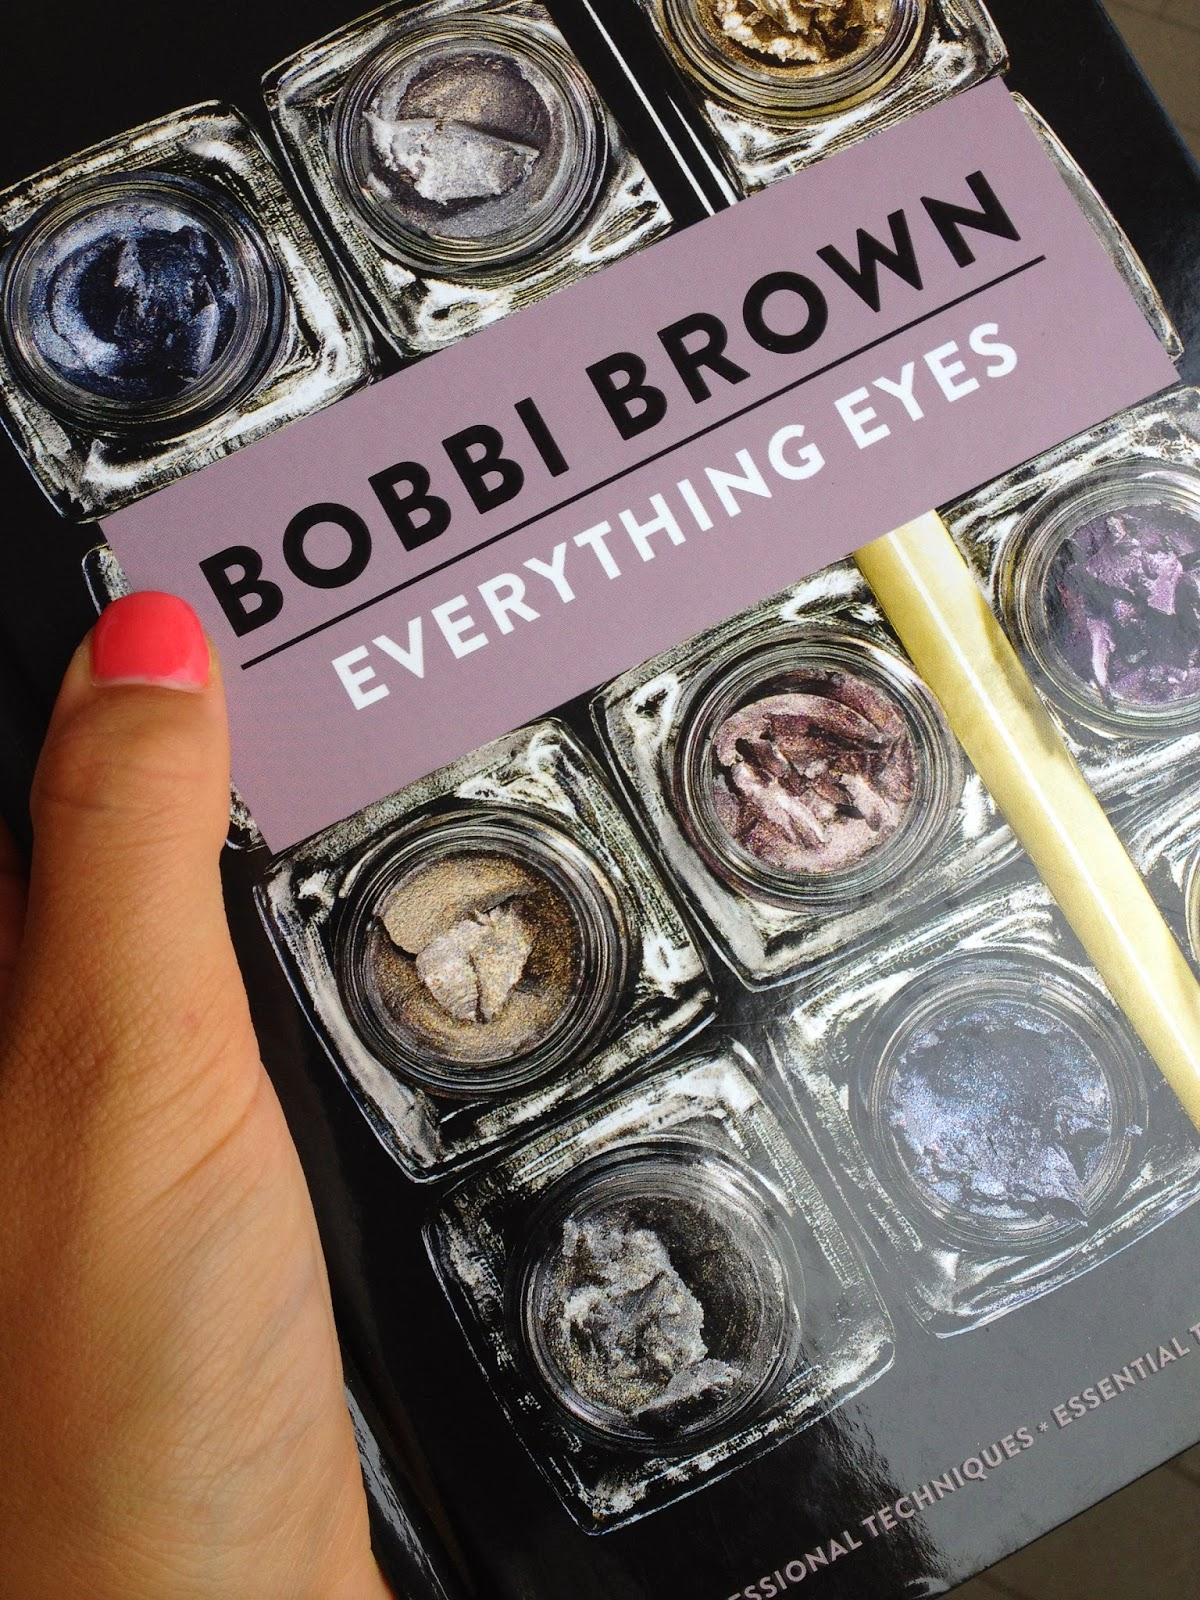 Bobbi Brown's Book